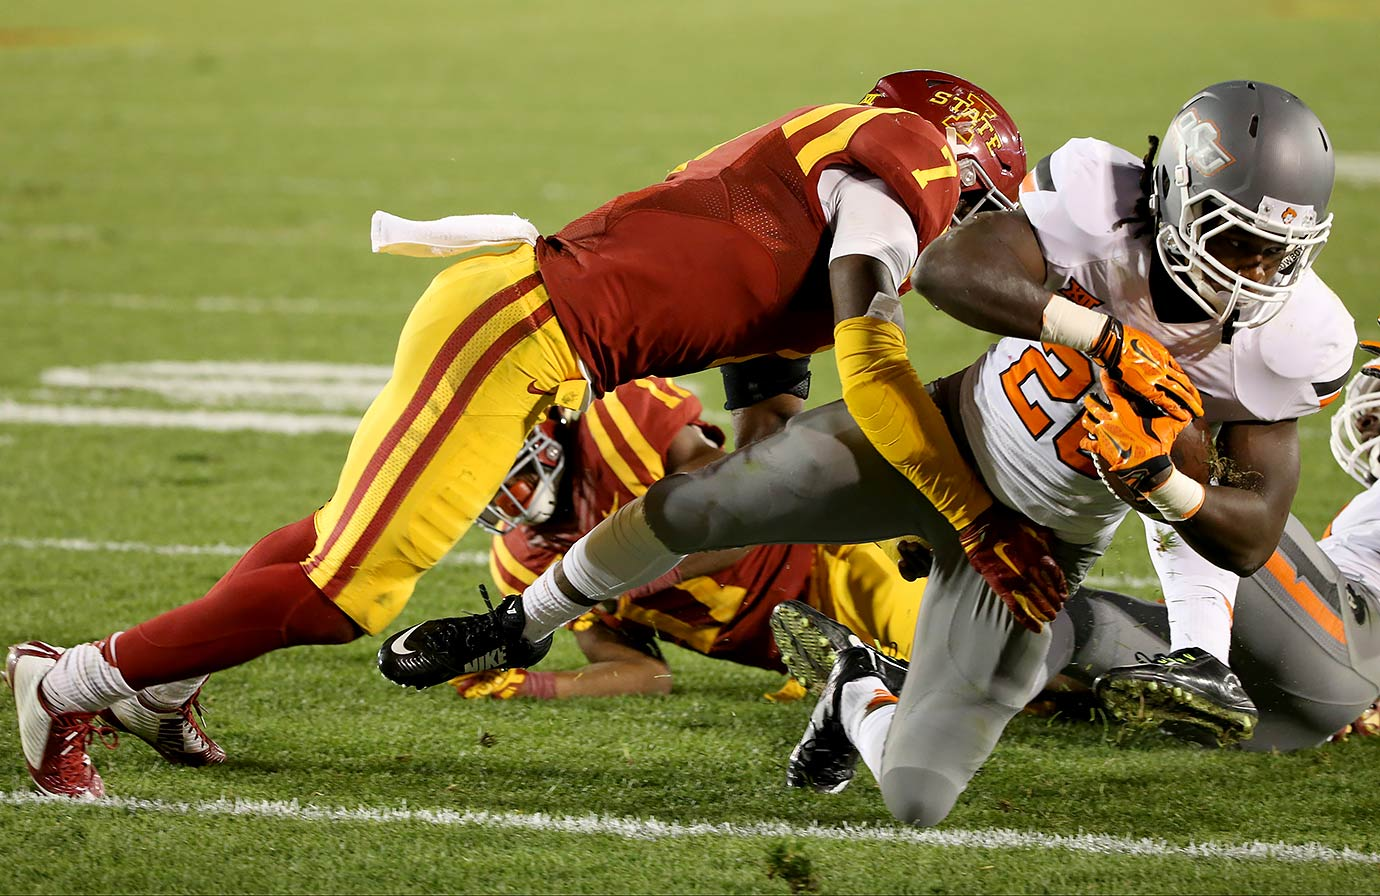 Four years after Iowa State ruined Oklahoma State's dream season, the Cowboys nearly saw history repeat itself, trailing the lowly Cyclones by 10 entering the fourth quarter. The Cowboys were able to rally back—aided on their game-winning drive by their own false start, which wiped out a critical third-down incompletion—and avoid the upset, keeping their playoff hopes alive.